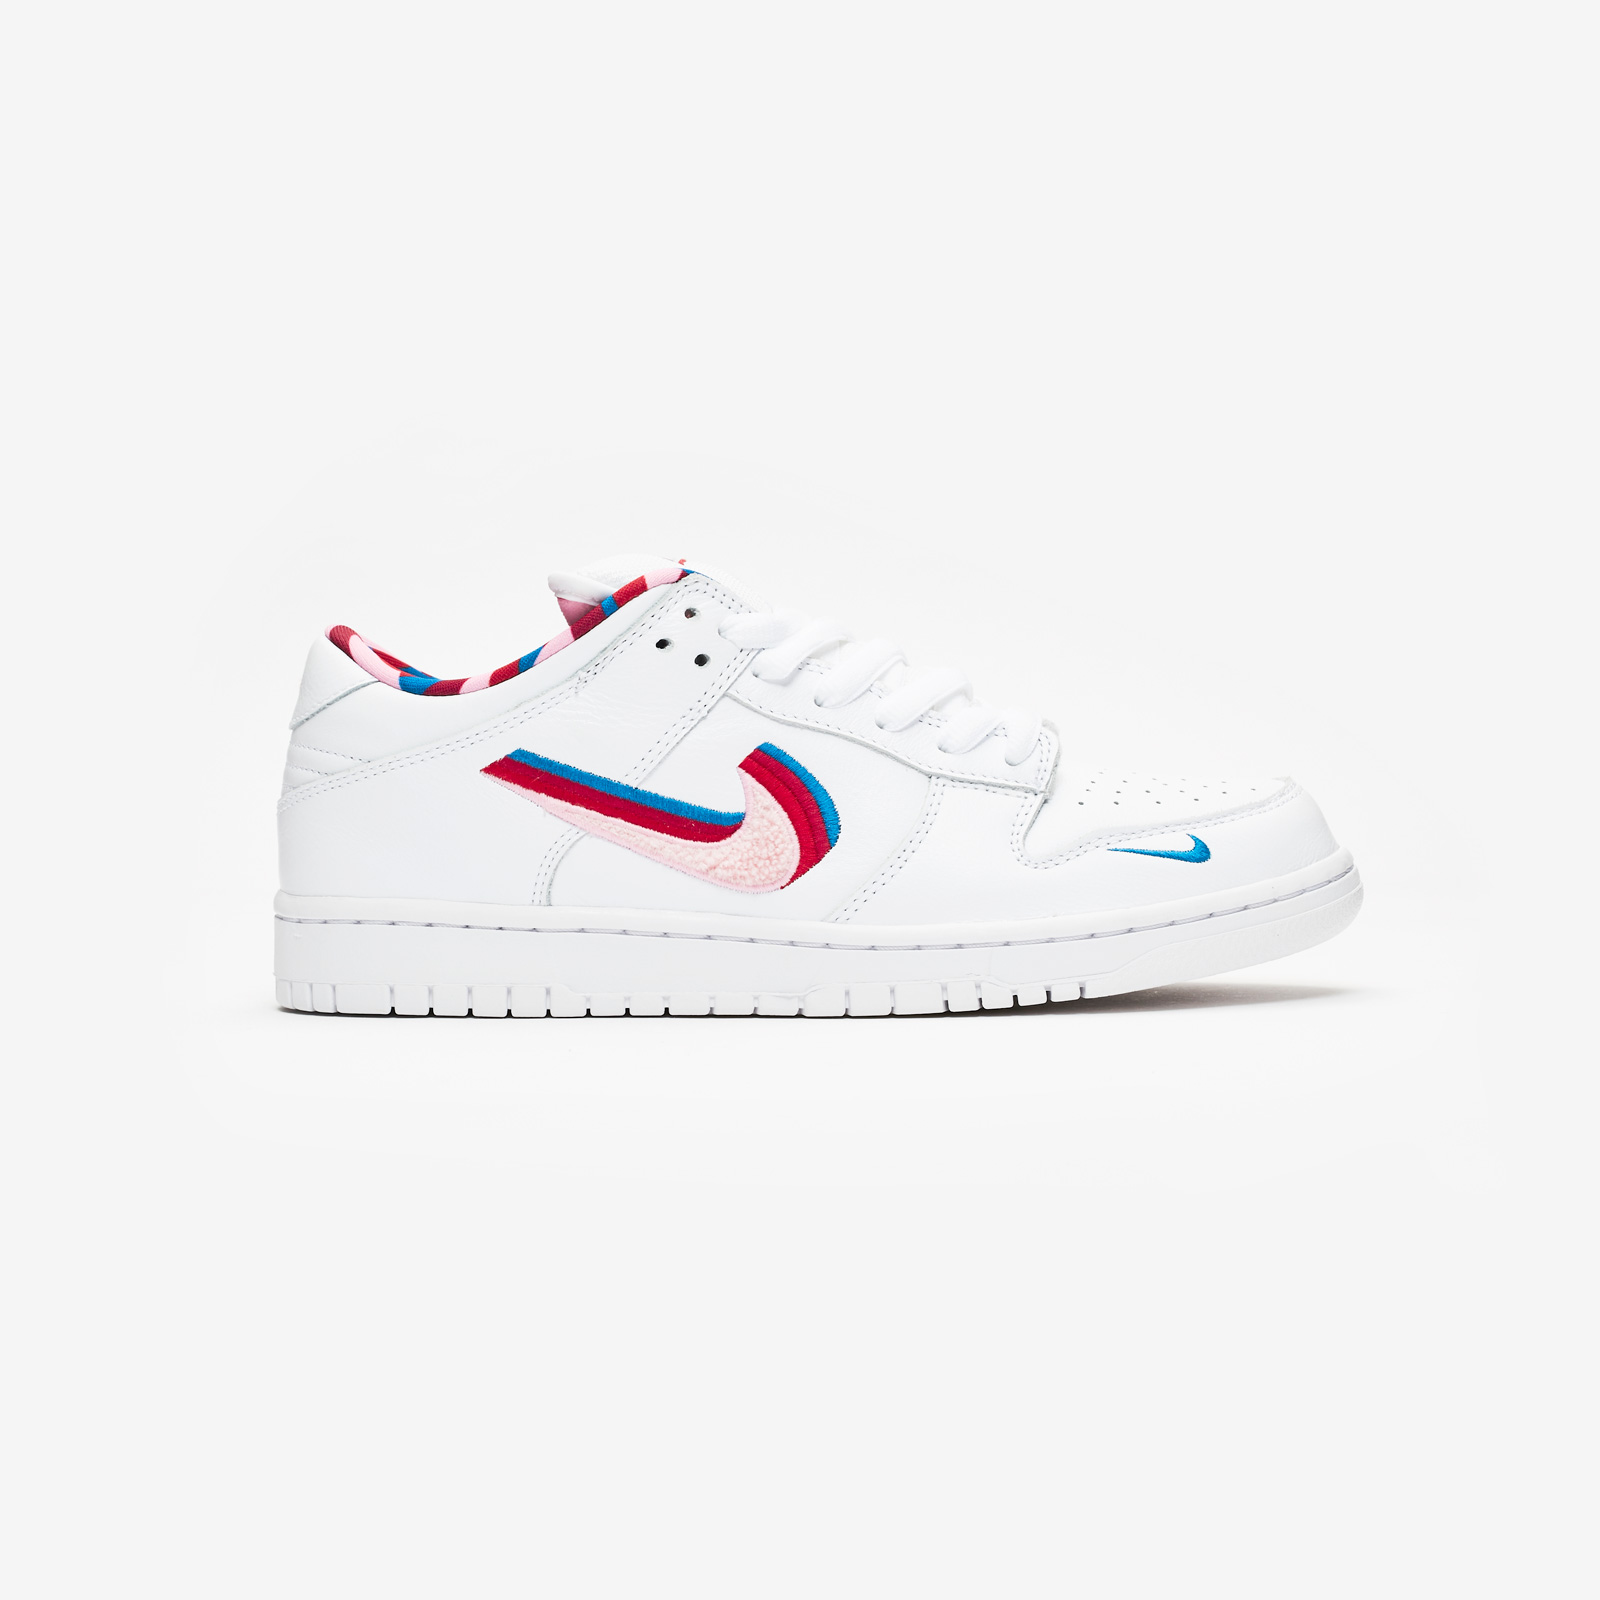 quality design f3fc5 b9e11 Nike Dunk Low x Parra - Cn4504-100 - Sneakersnstuff ...